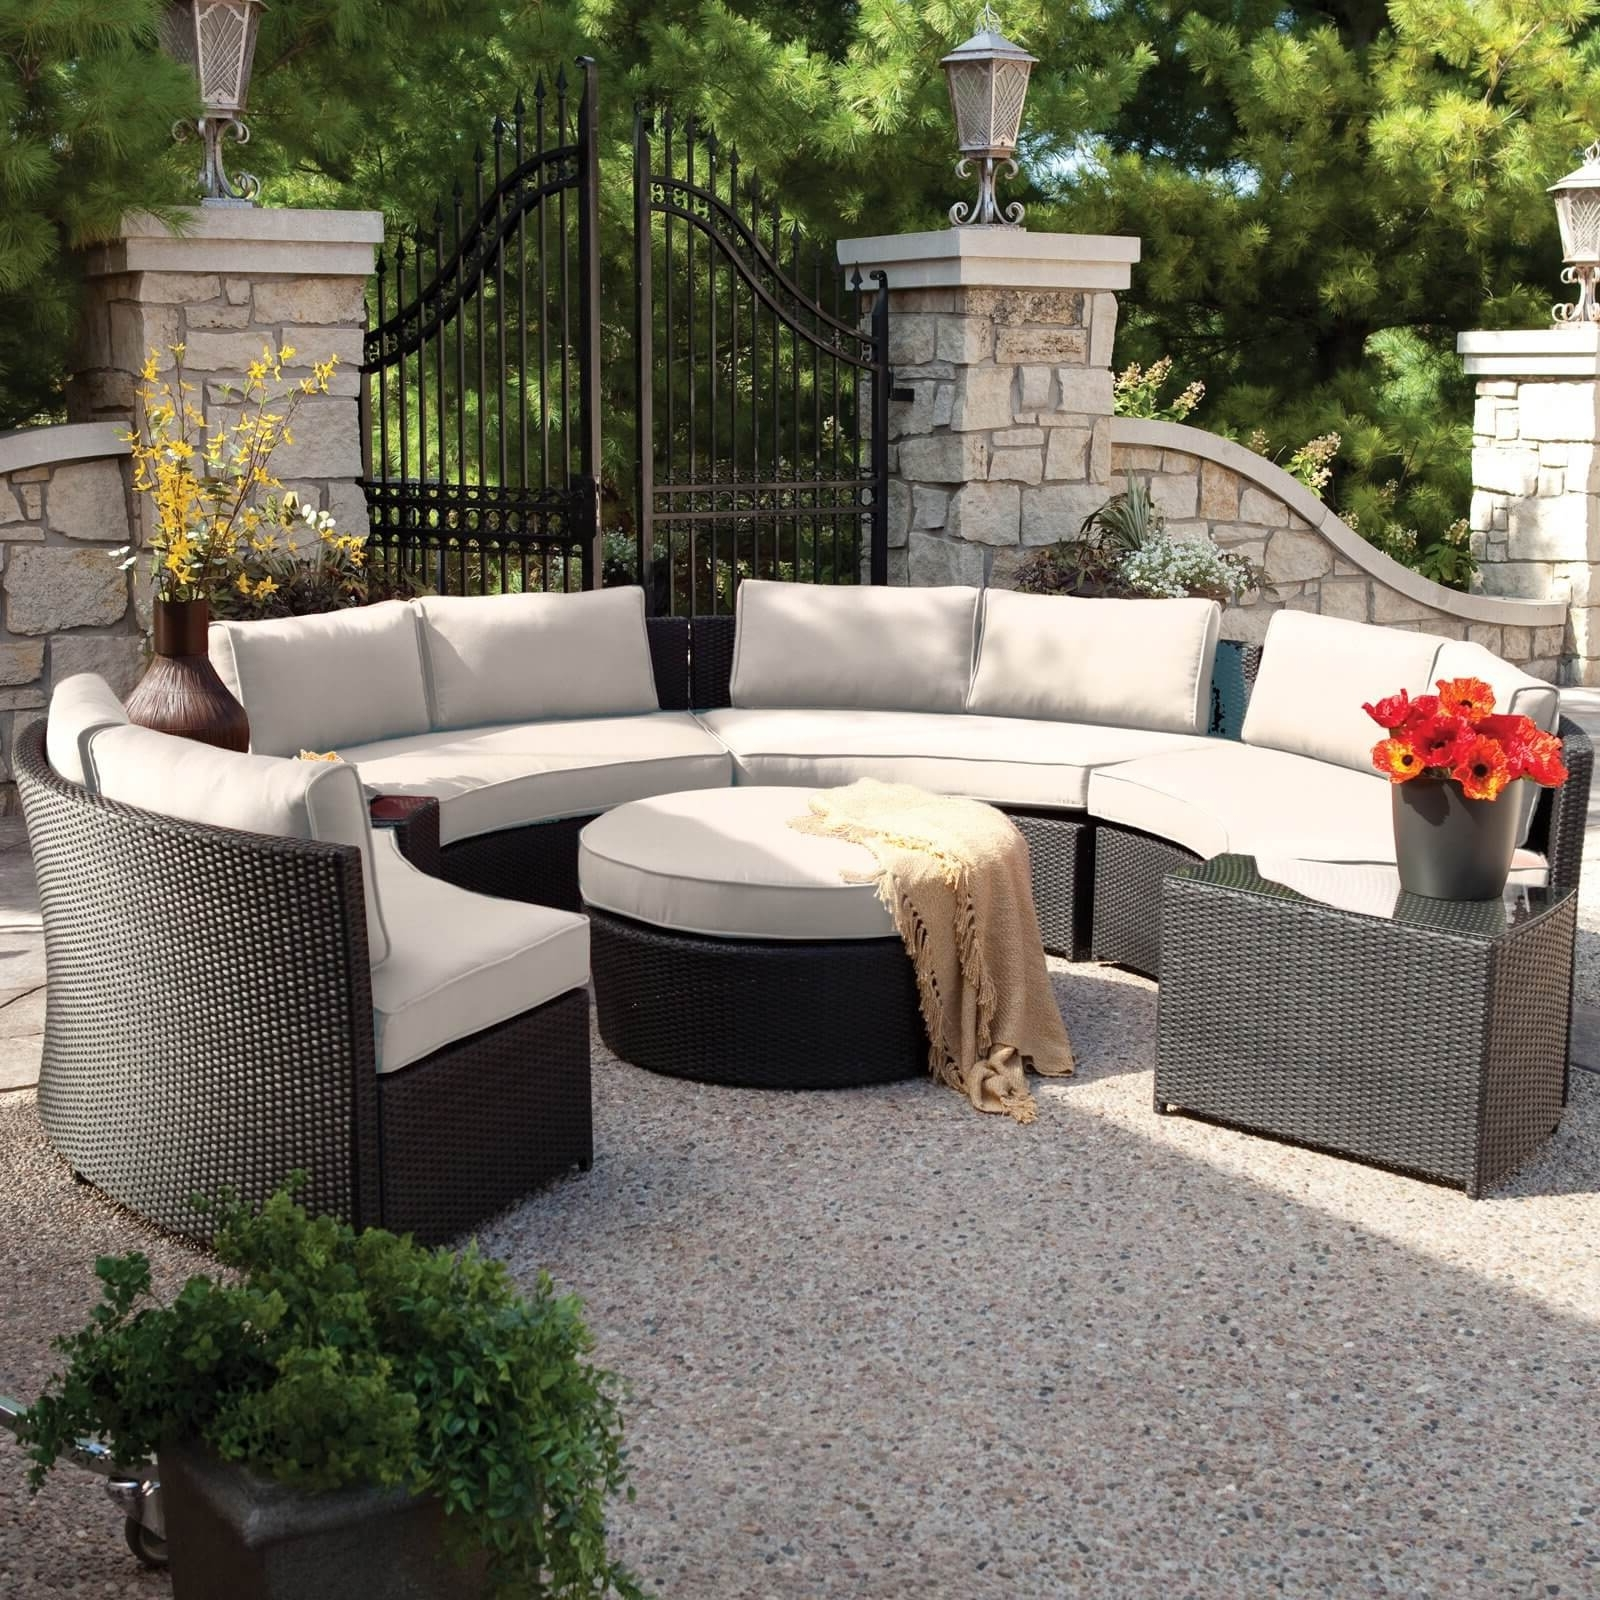 Most Recent 25 Awesome Modern Brown All Weather Outdoor Patio Sectionals Inside Resin Conversation Patio Sets (View 9 of 15)